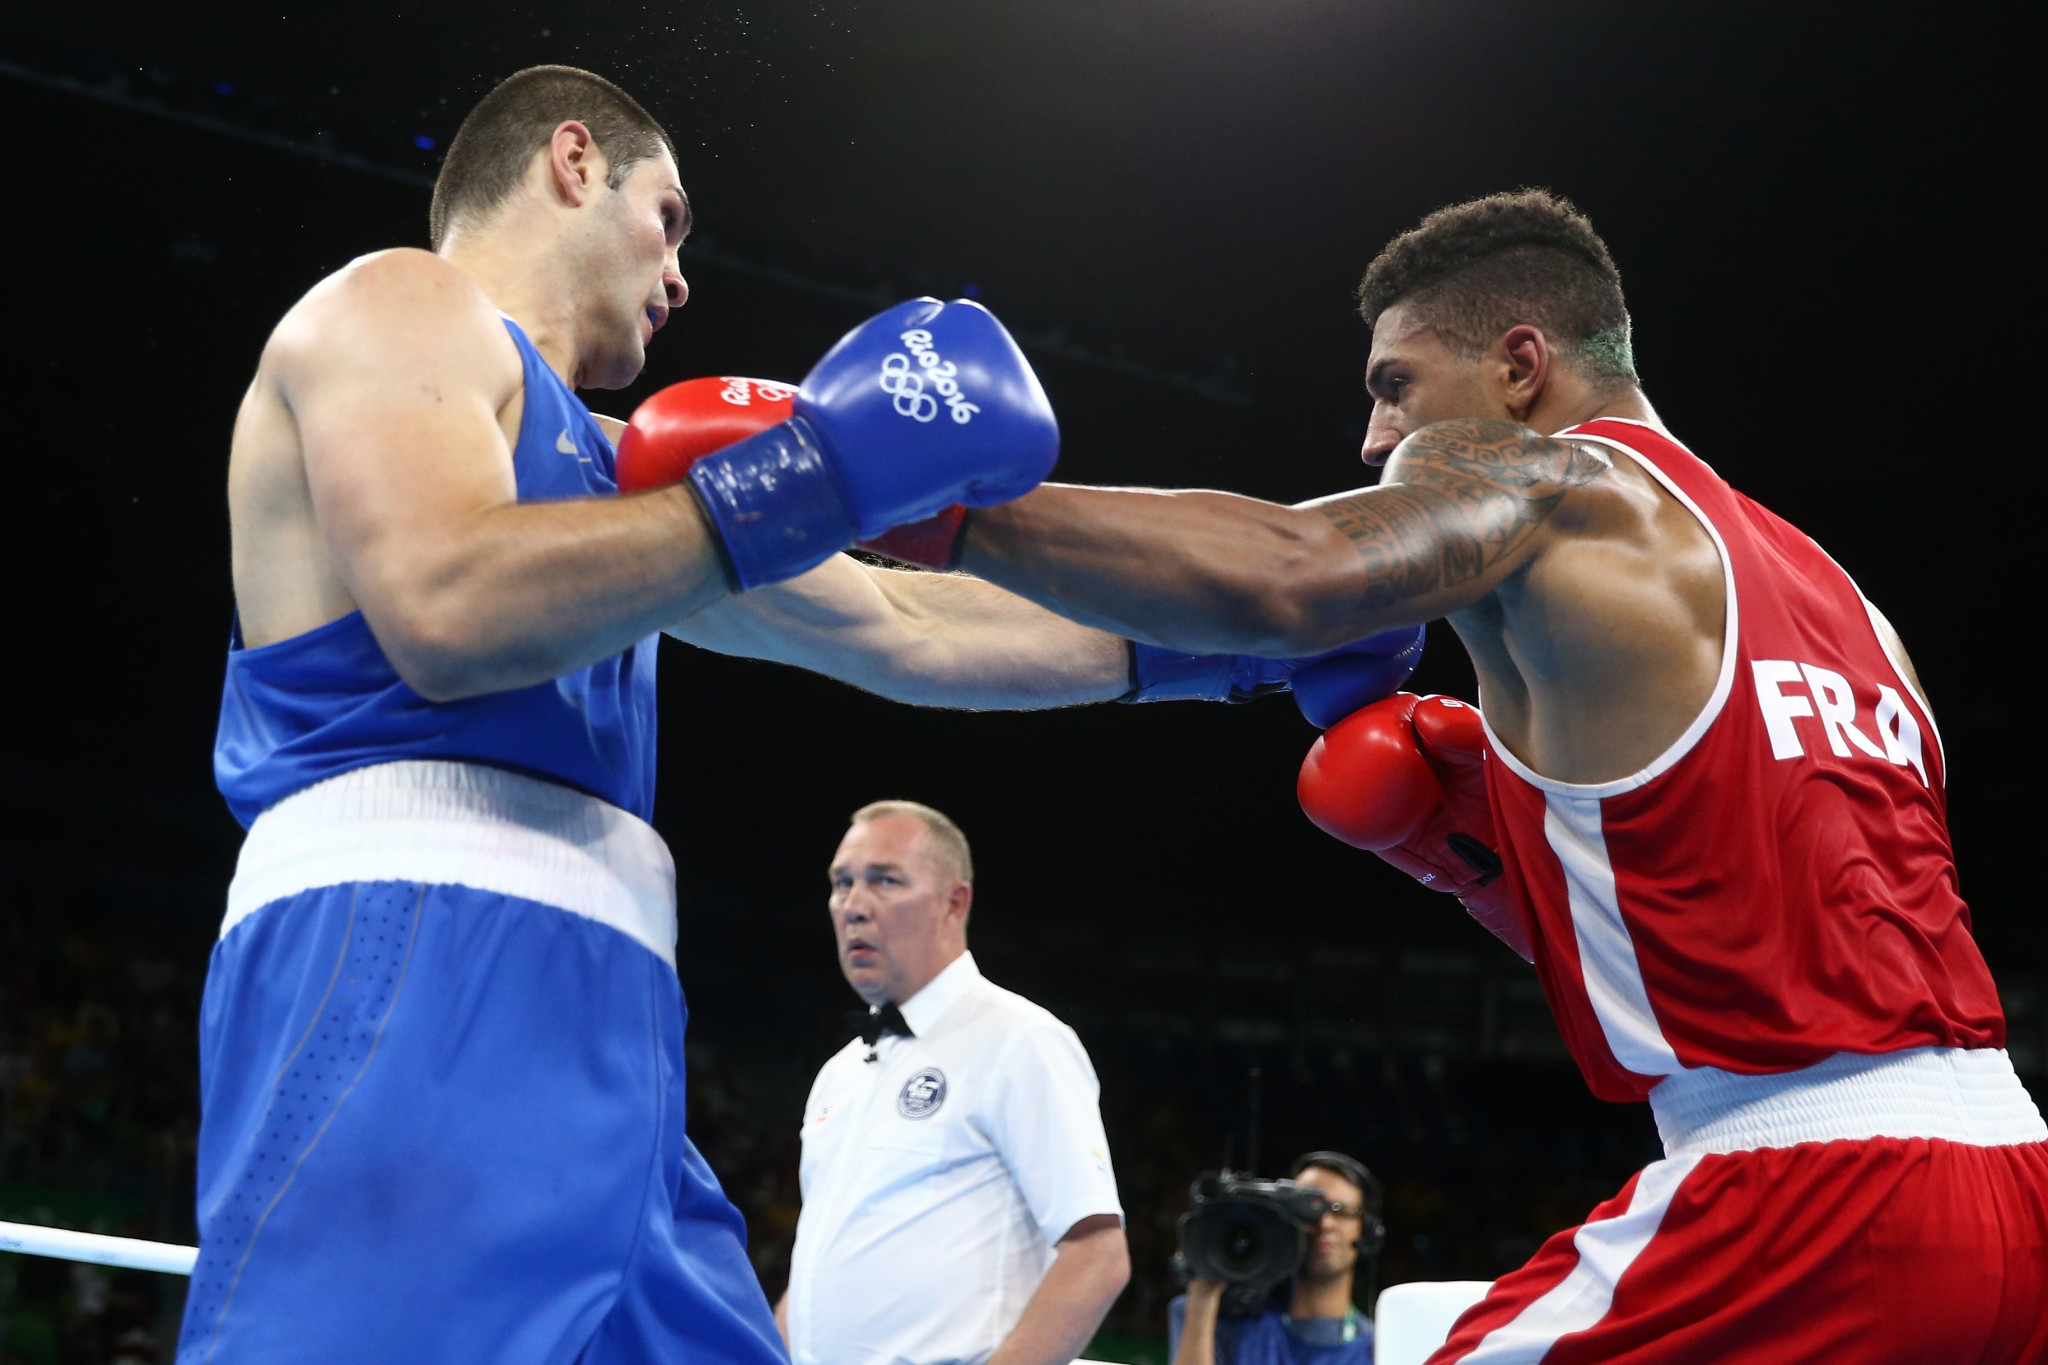 AIBA was suspended as the governing body for boxing in June ©Getty Images